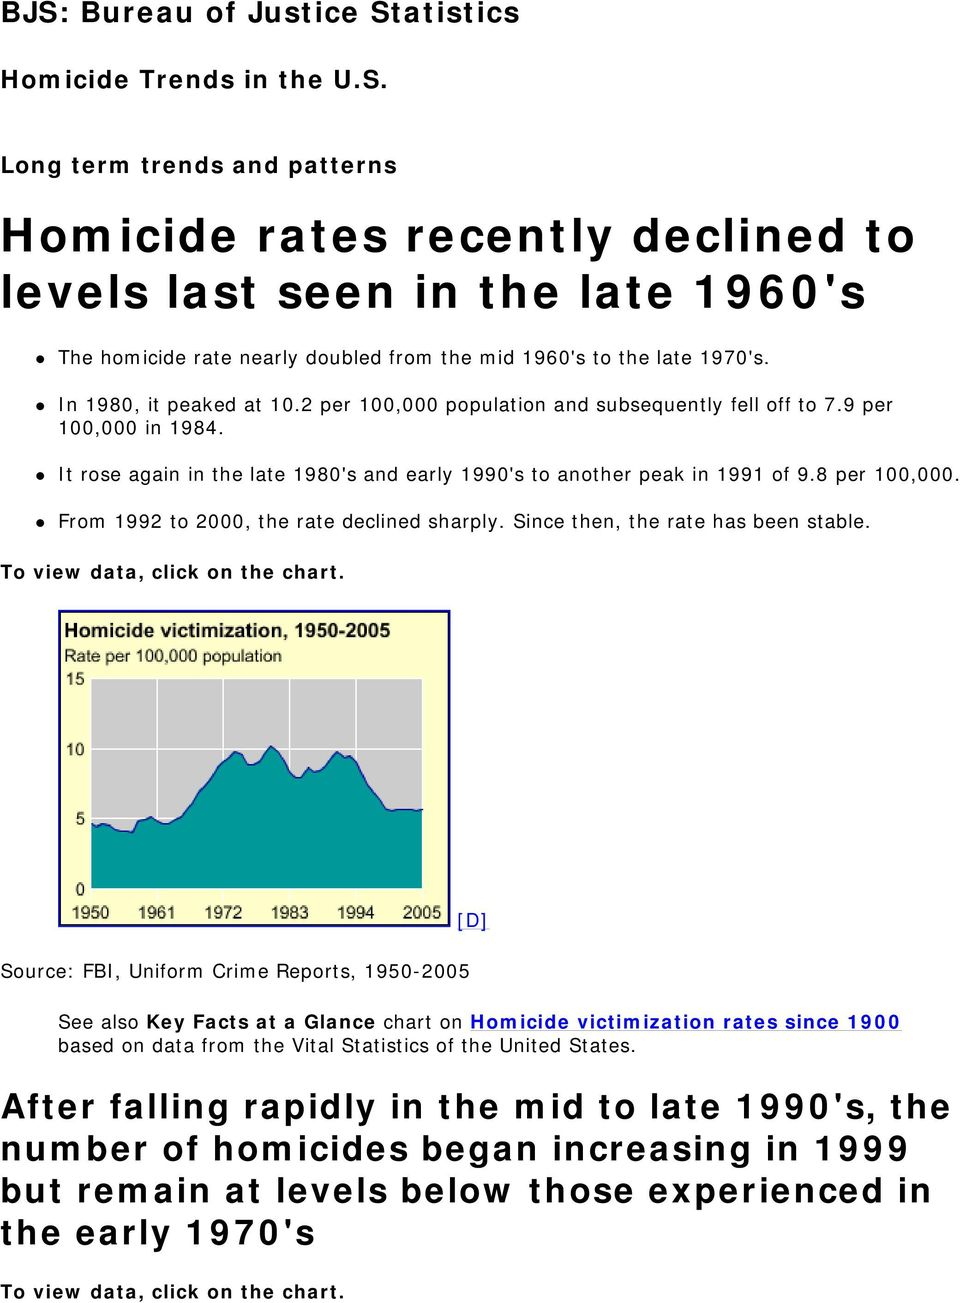 From 1992 to 2000, the rate declined sharply. Since then, the rate has been stable. To view data, click on the chart.